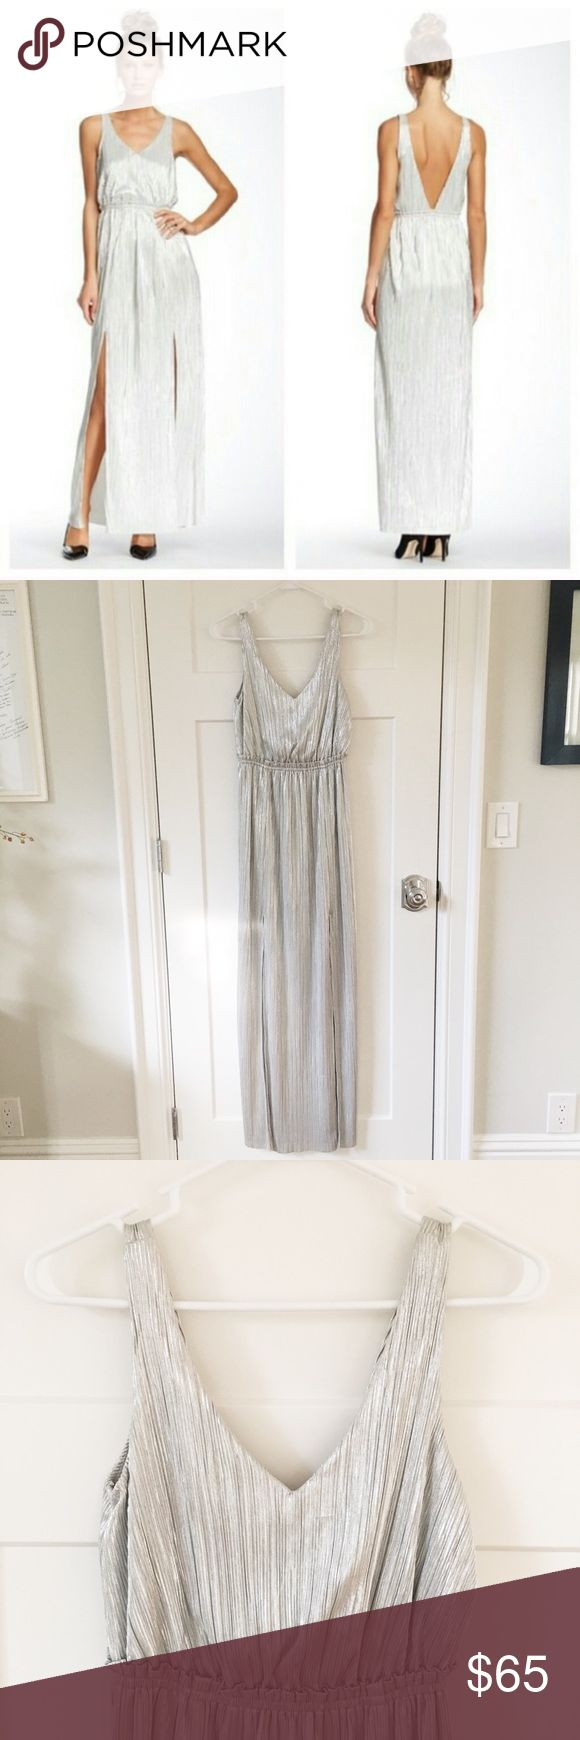 BCBGeneration Metallic Evening Dress, XS BCBGeneration metallic evening dress in silver. Size extra small. Brand-new with tags. Gorgeous dress with a V front and a deep V back. Very comfortable, no zippers. BCBGeneration Dresses Maxi